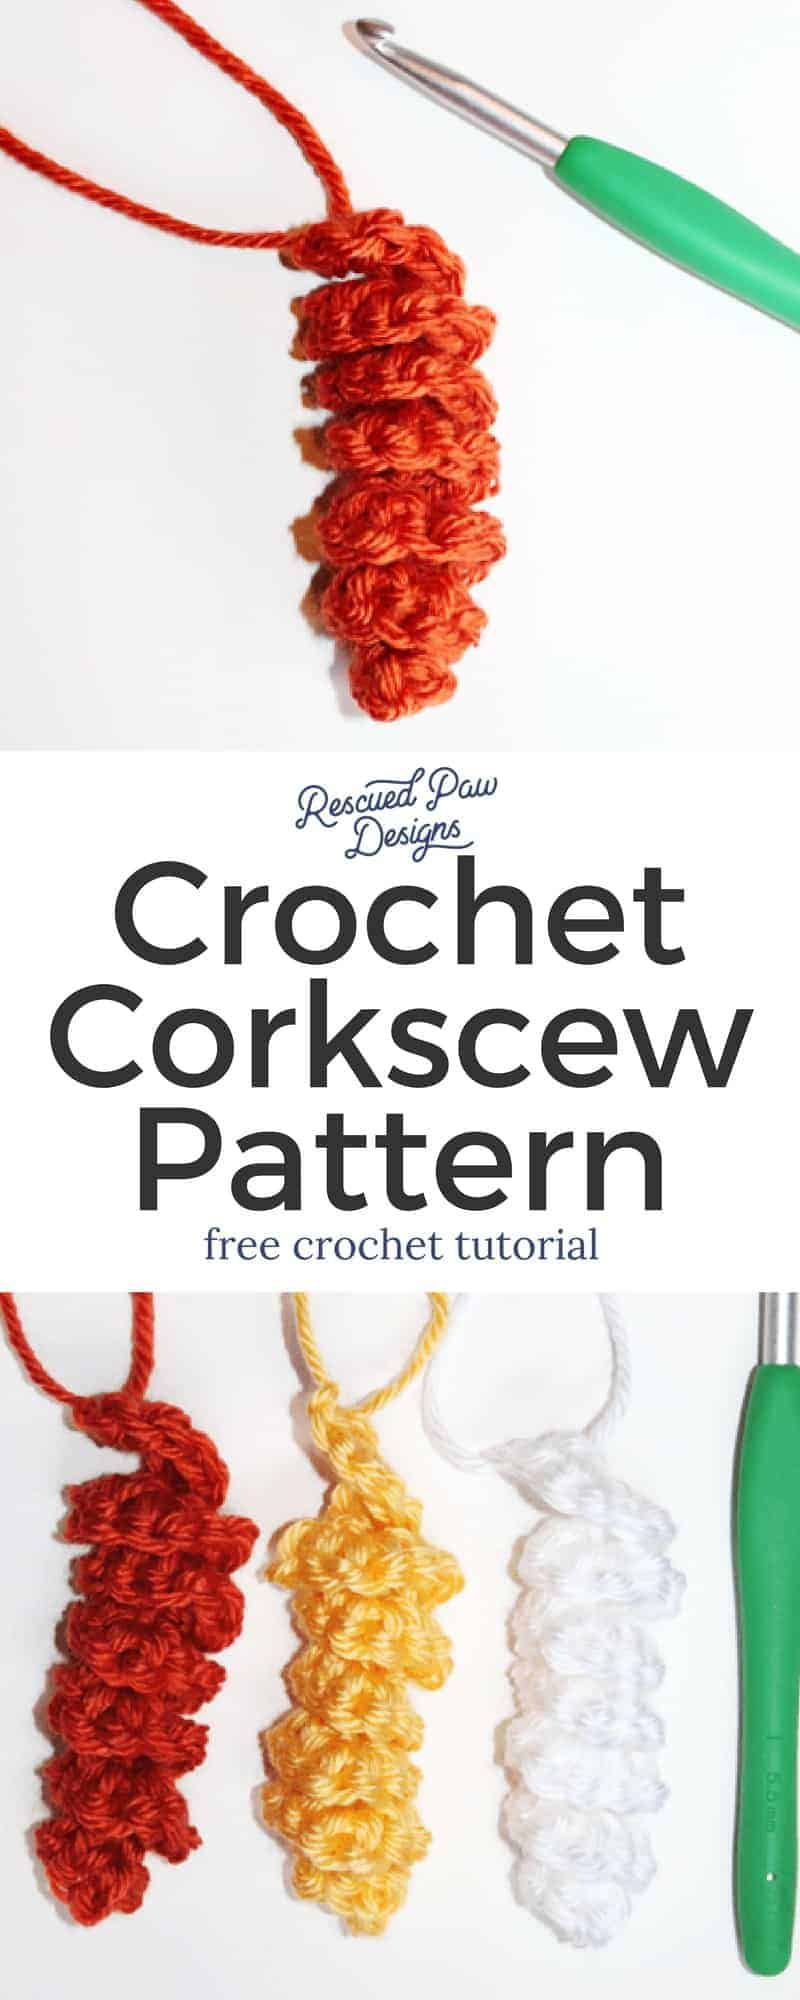 Corkscrew Crochet Pattern! This would be great as hair ties and much more!